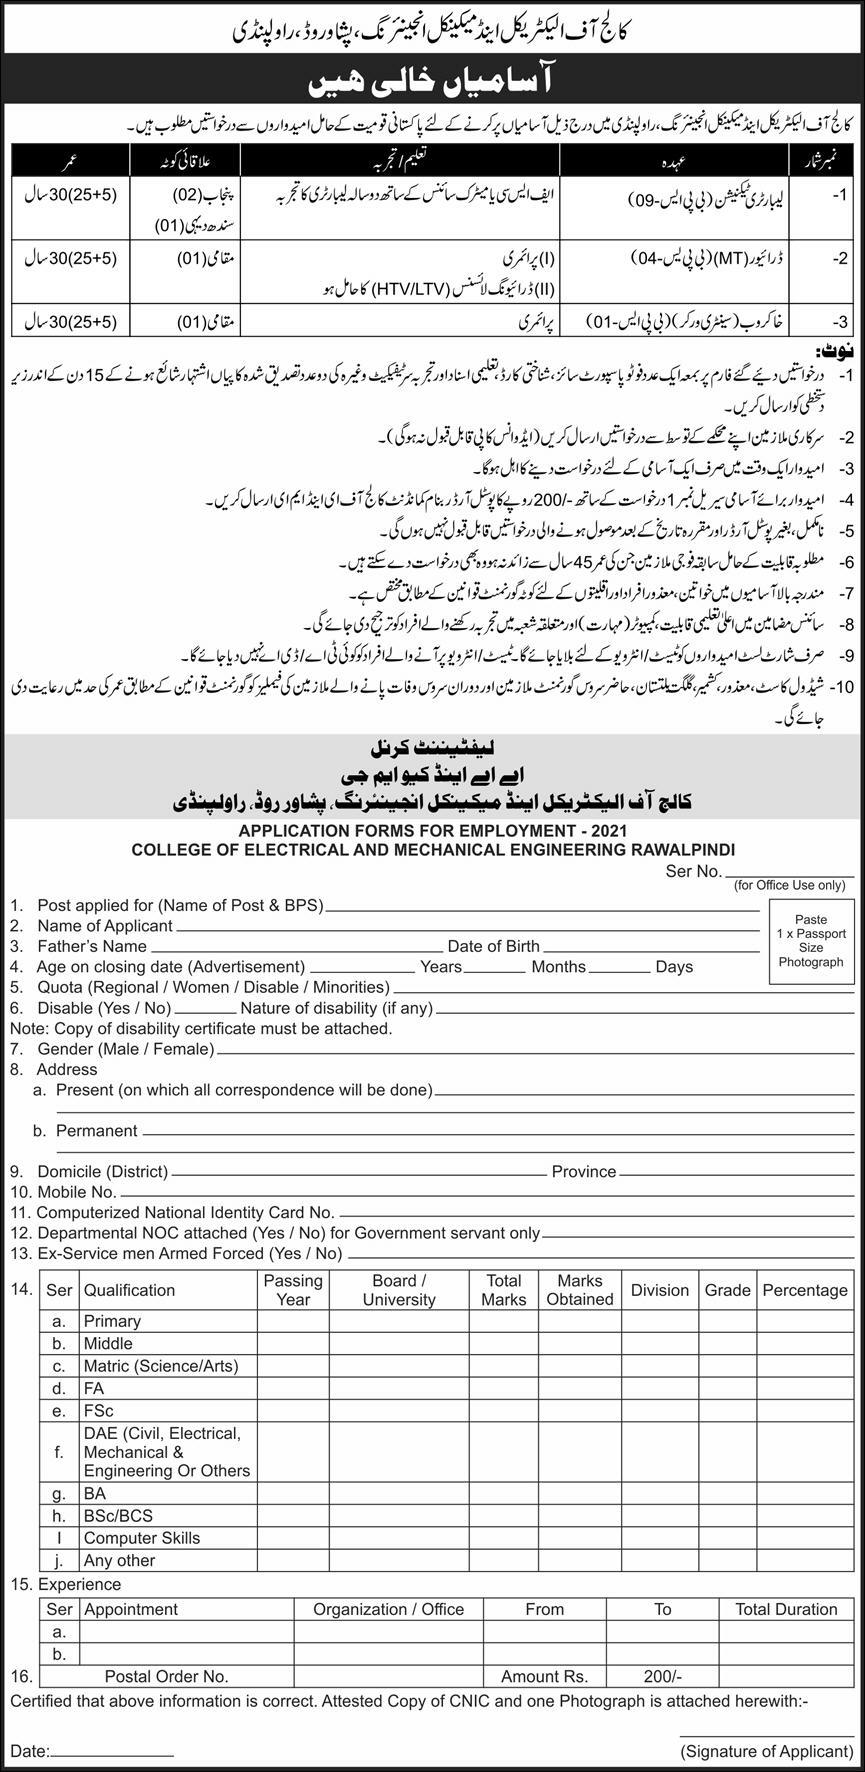 Pak Army College of Electrical & Mechanical Engineering Jobs 2021